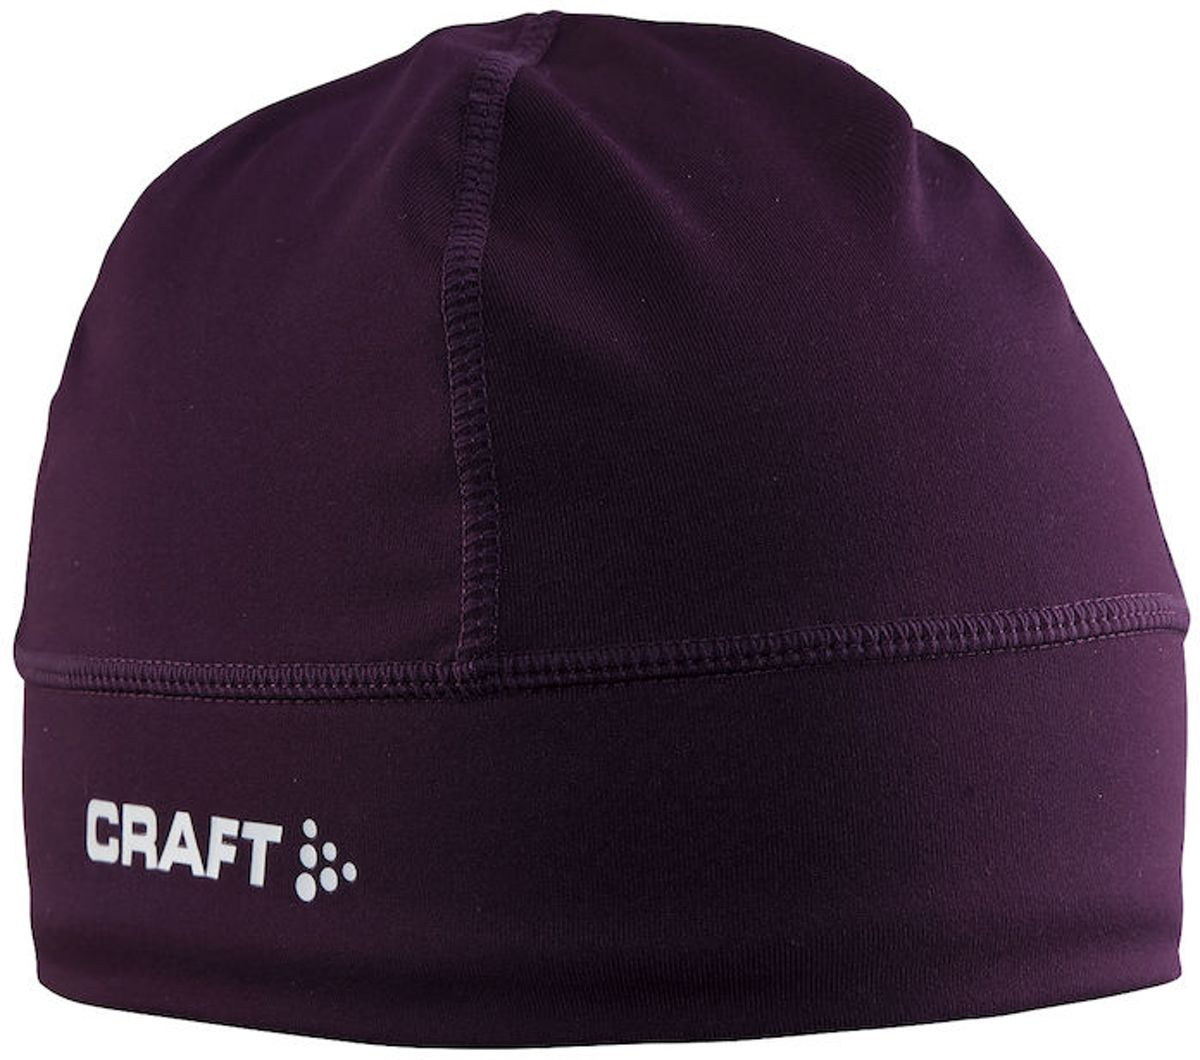 Craft craft light thermal hat - Muts - Unisex - Space - S/M thumbnail